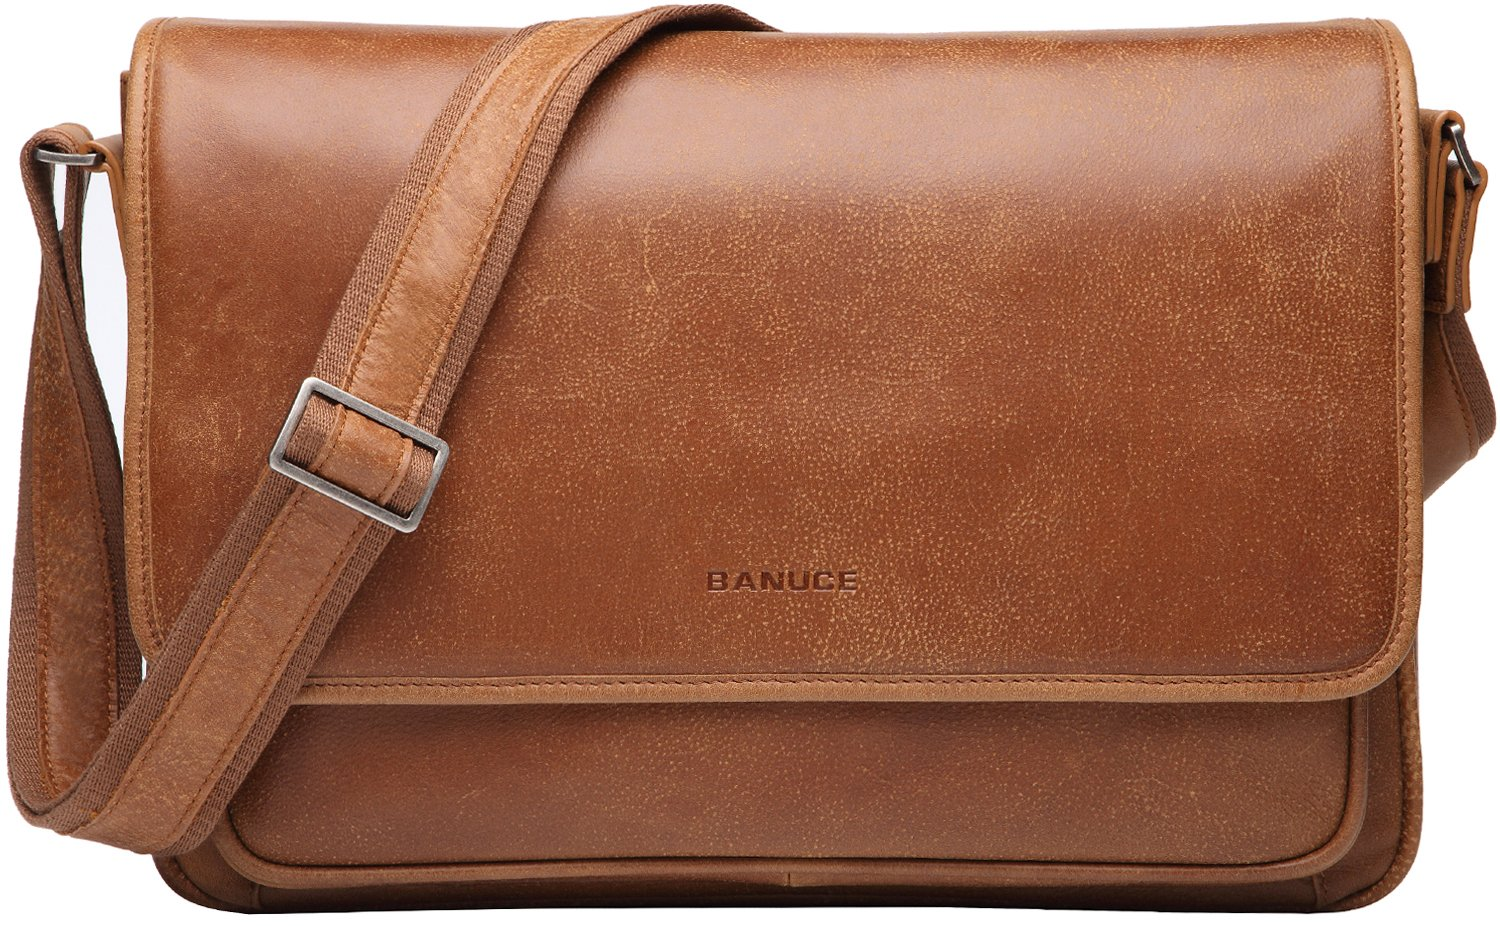 Banuce Messenger Bag for Men Leather Vintage Business Laptop Shoulder Bag by Banuce